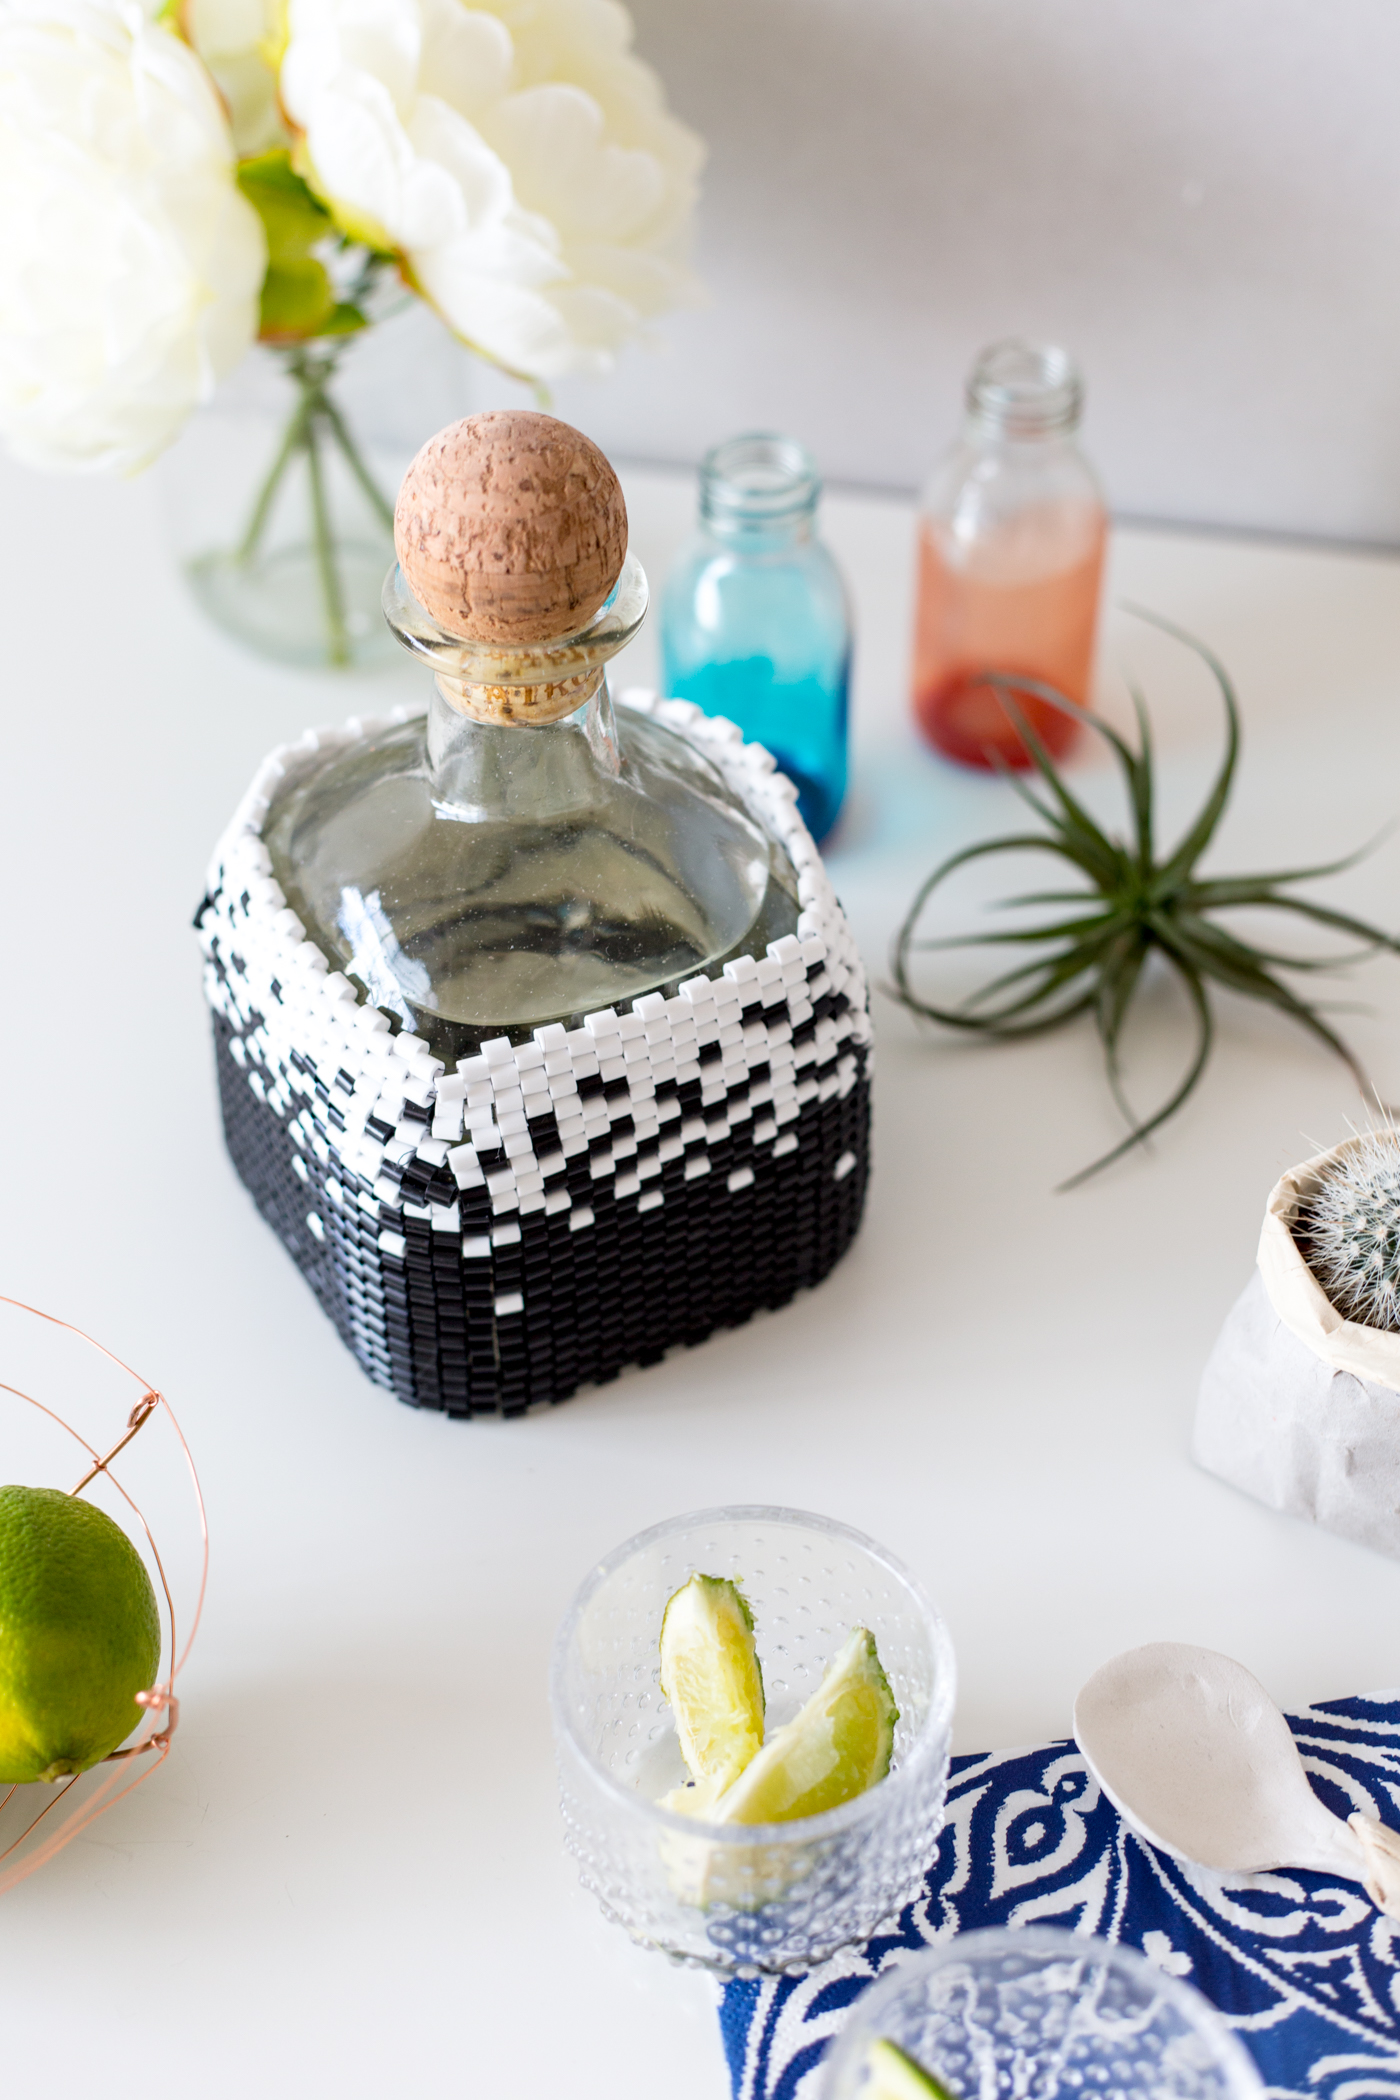 diy-beaded-bottle-cover-in-peyote-stitch-with-tutorial-fallfordiy-2